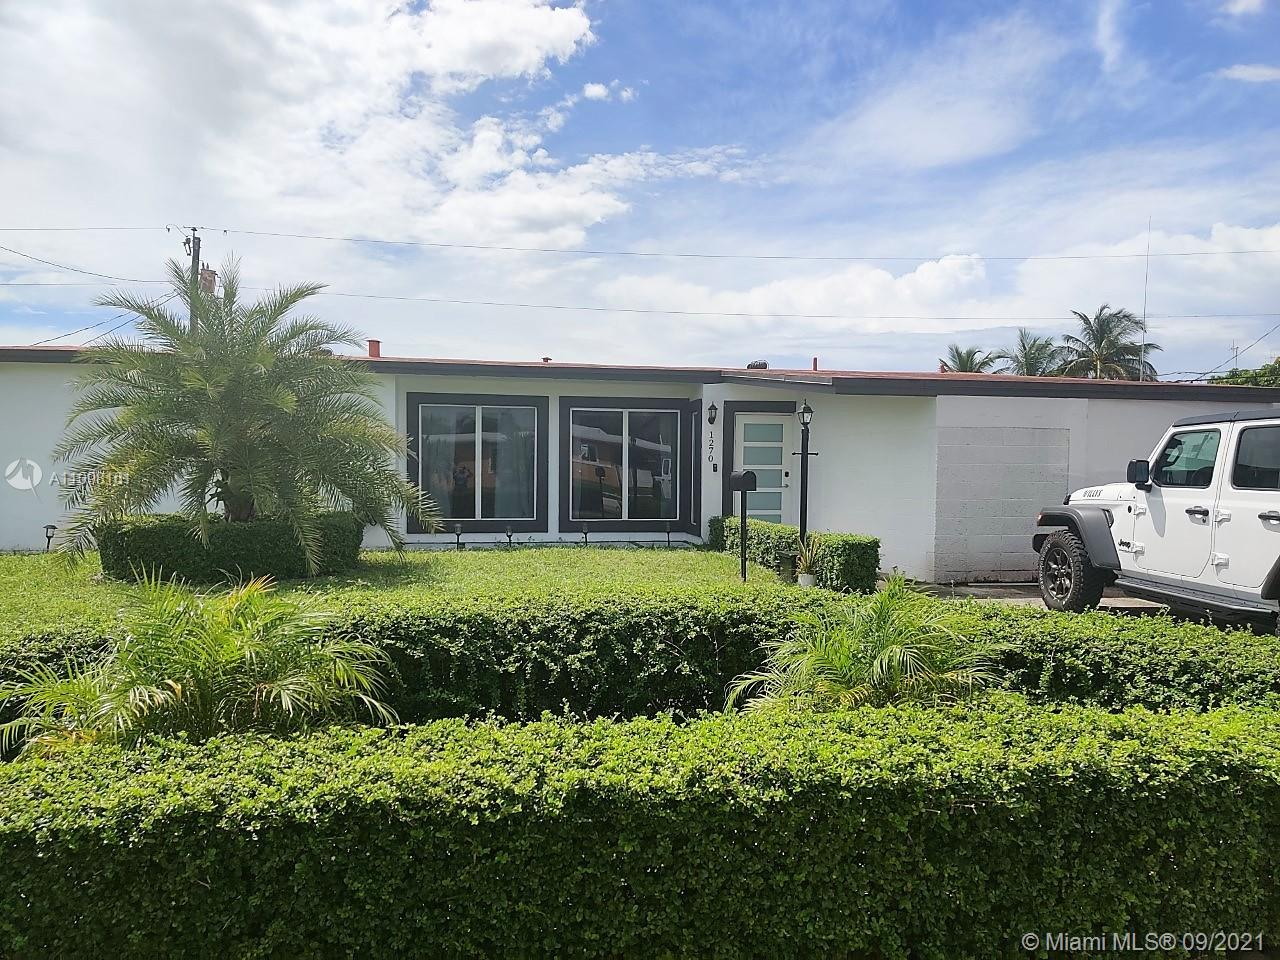 Westhaven Heights - 1270 W 61st Pl, Hialeah, FL 33012